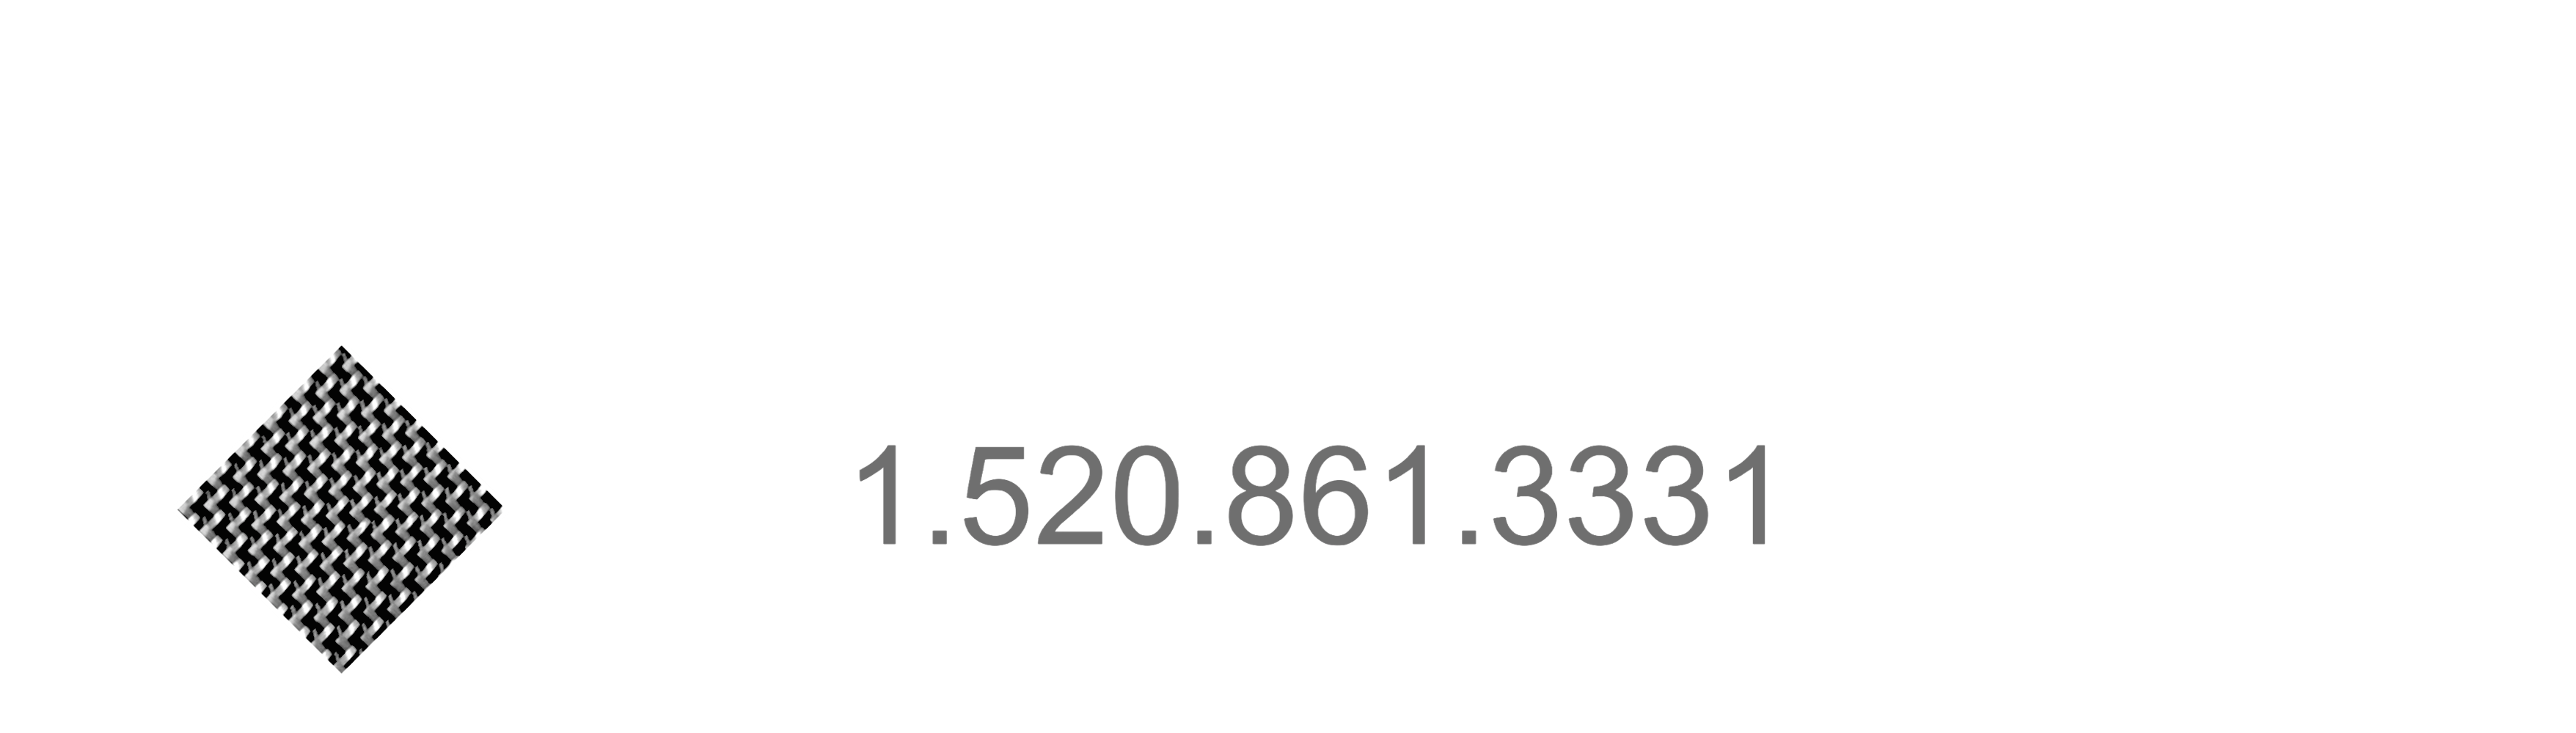 FRP Construction